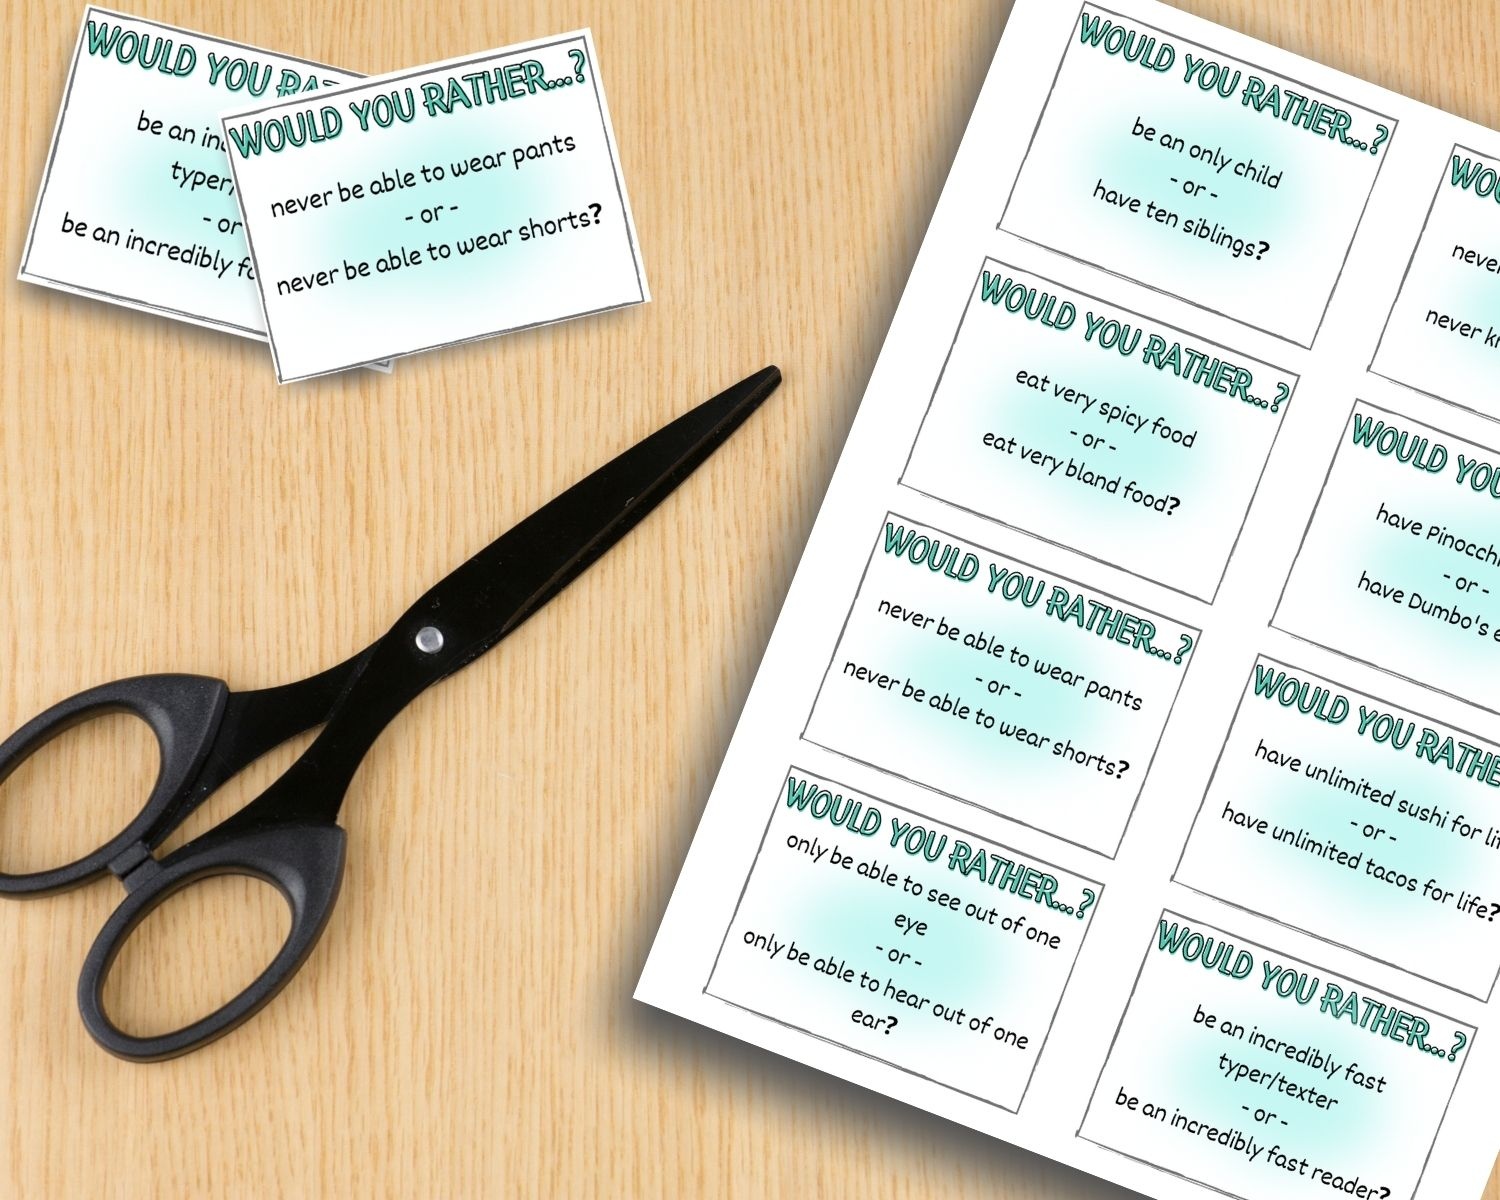 A sheet of would you rather cards sits next to a pair of scissors